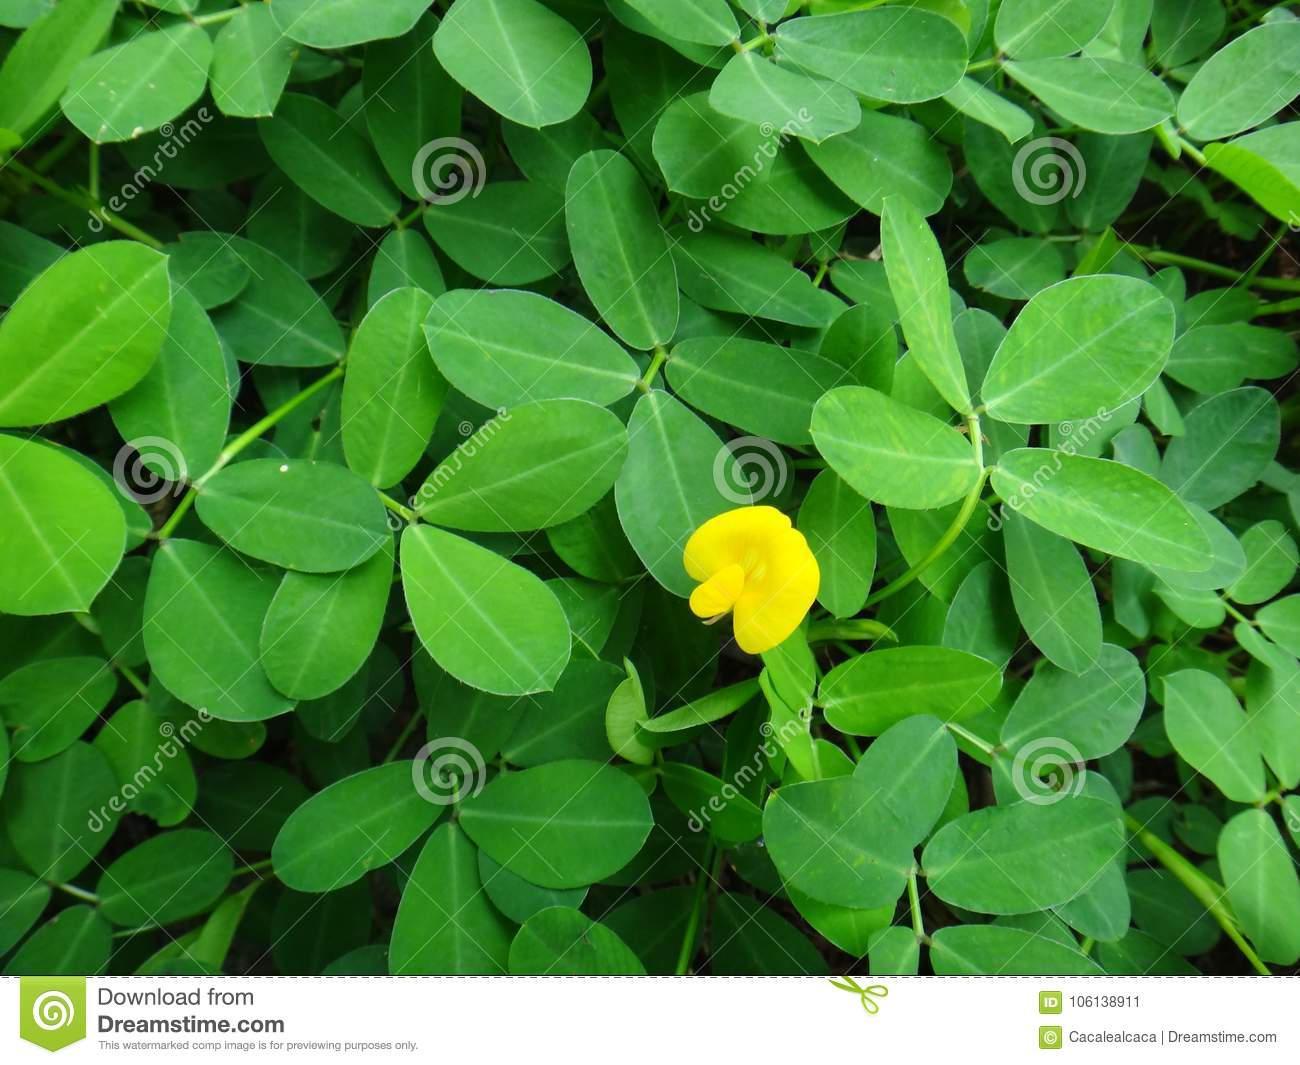 Plant Of The Creeping Peanut With Small Yellow Flower Stock Image